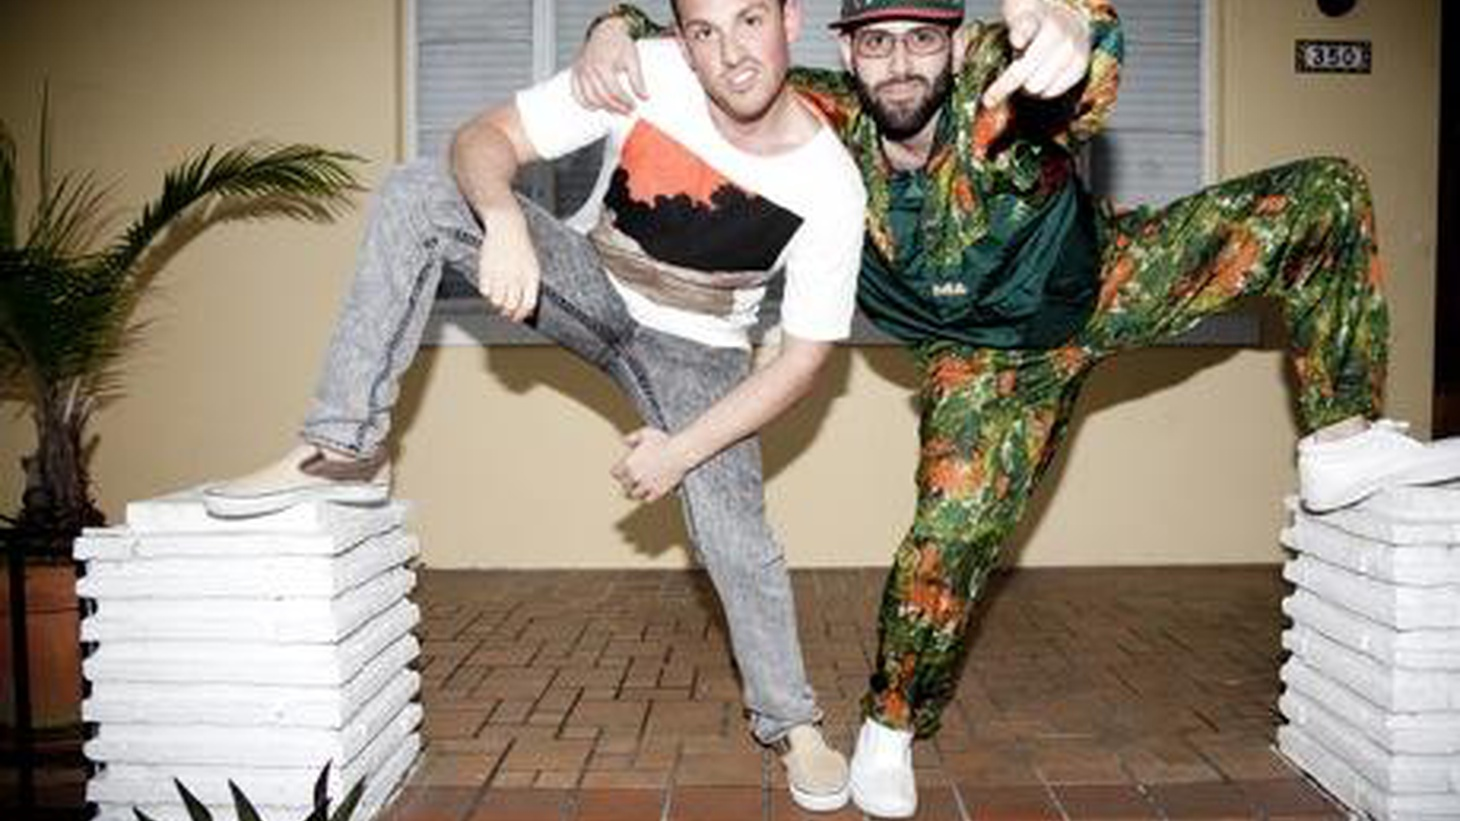 On the heels of the release of their debut full length, Efunk, the Boston based duo Soul Clap return to Los Angeles for a record release party on 5 de Mayo. They'll drop a guest DJ set on Friday night in the 11 o'clock hour.